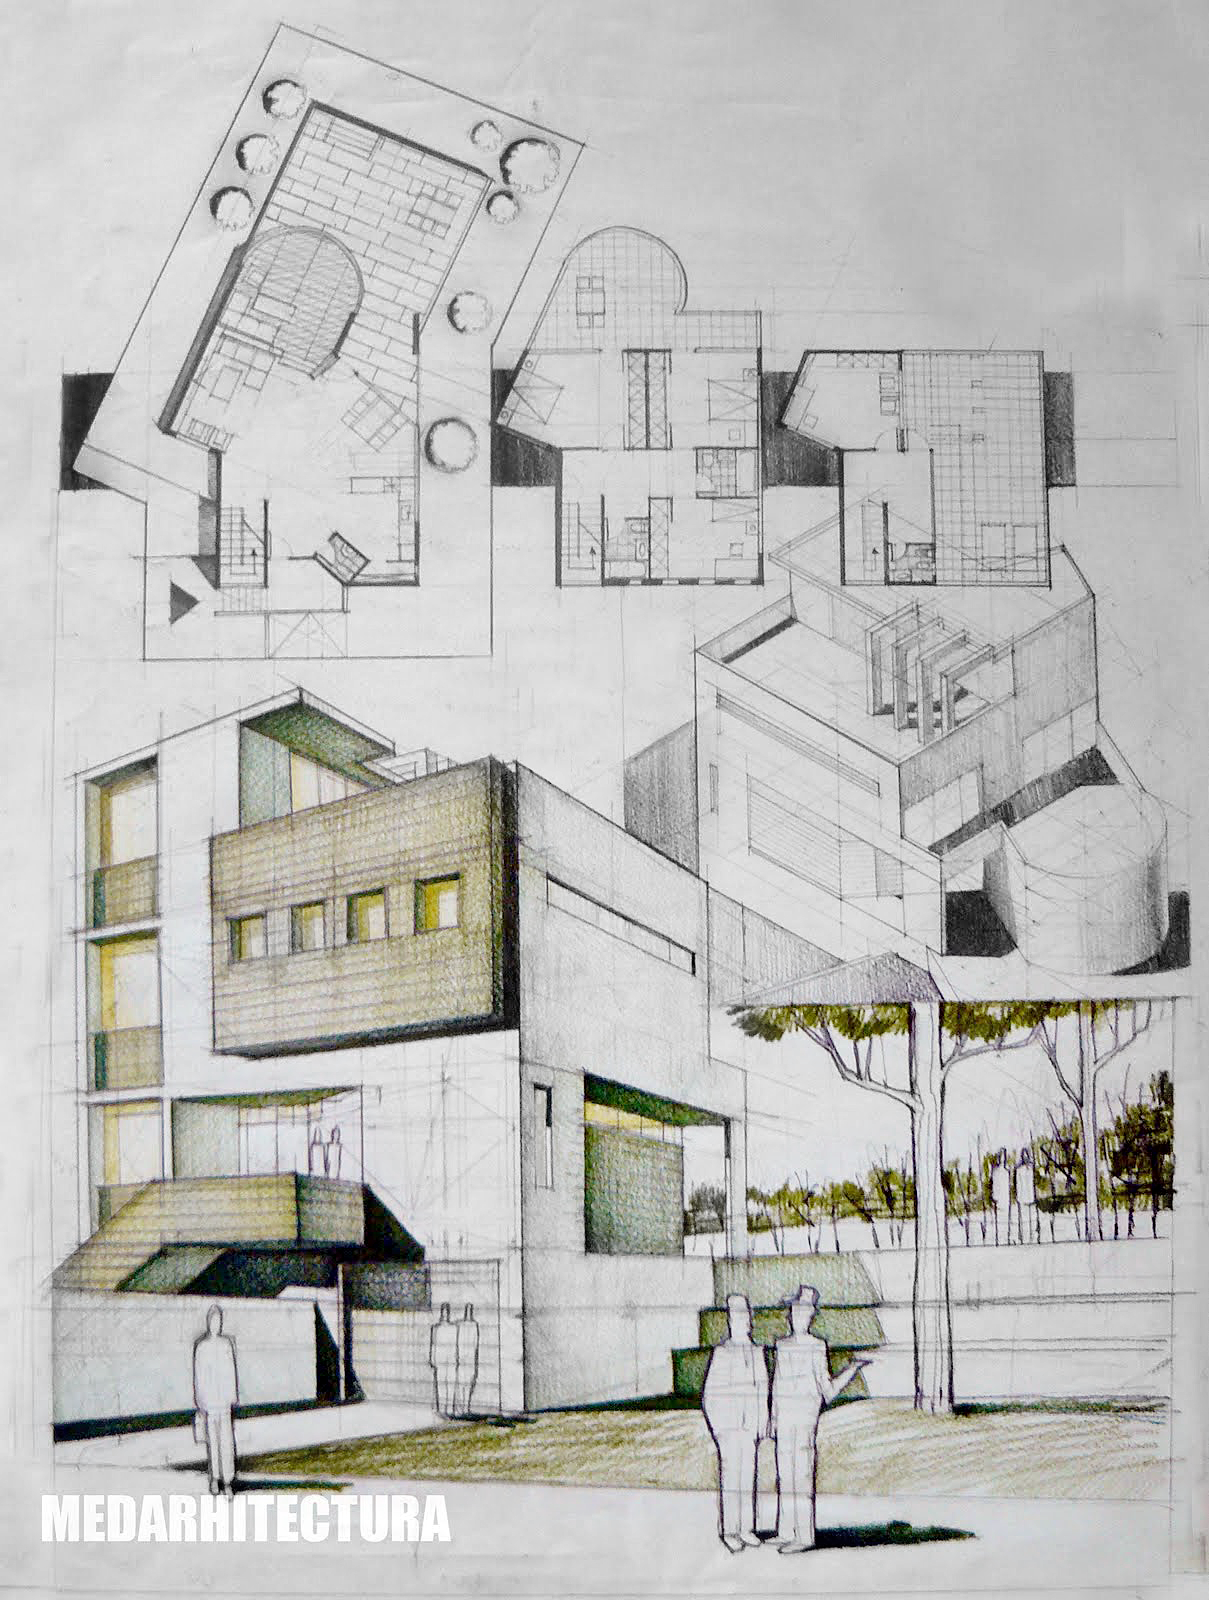 Pin On Architectural Presentations Drawings Models Concepts